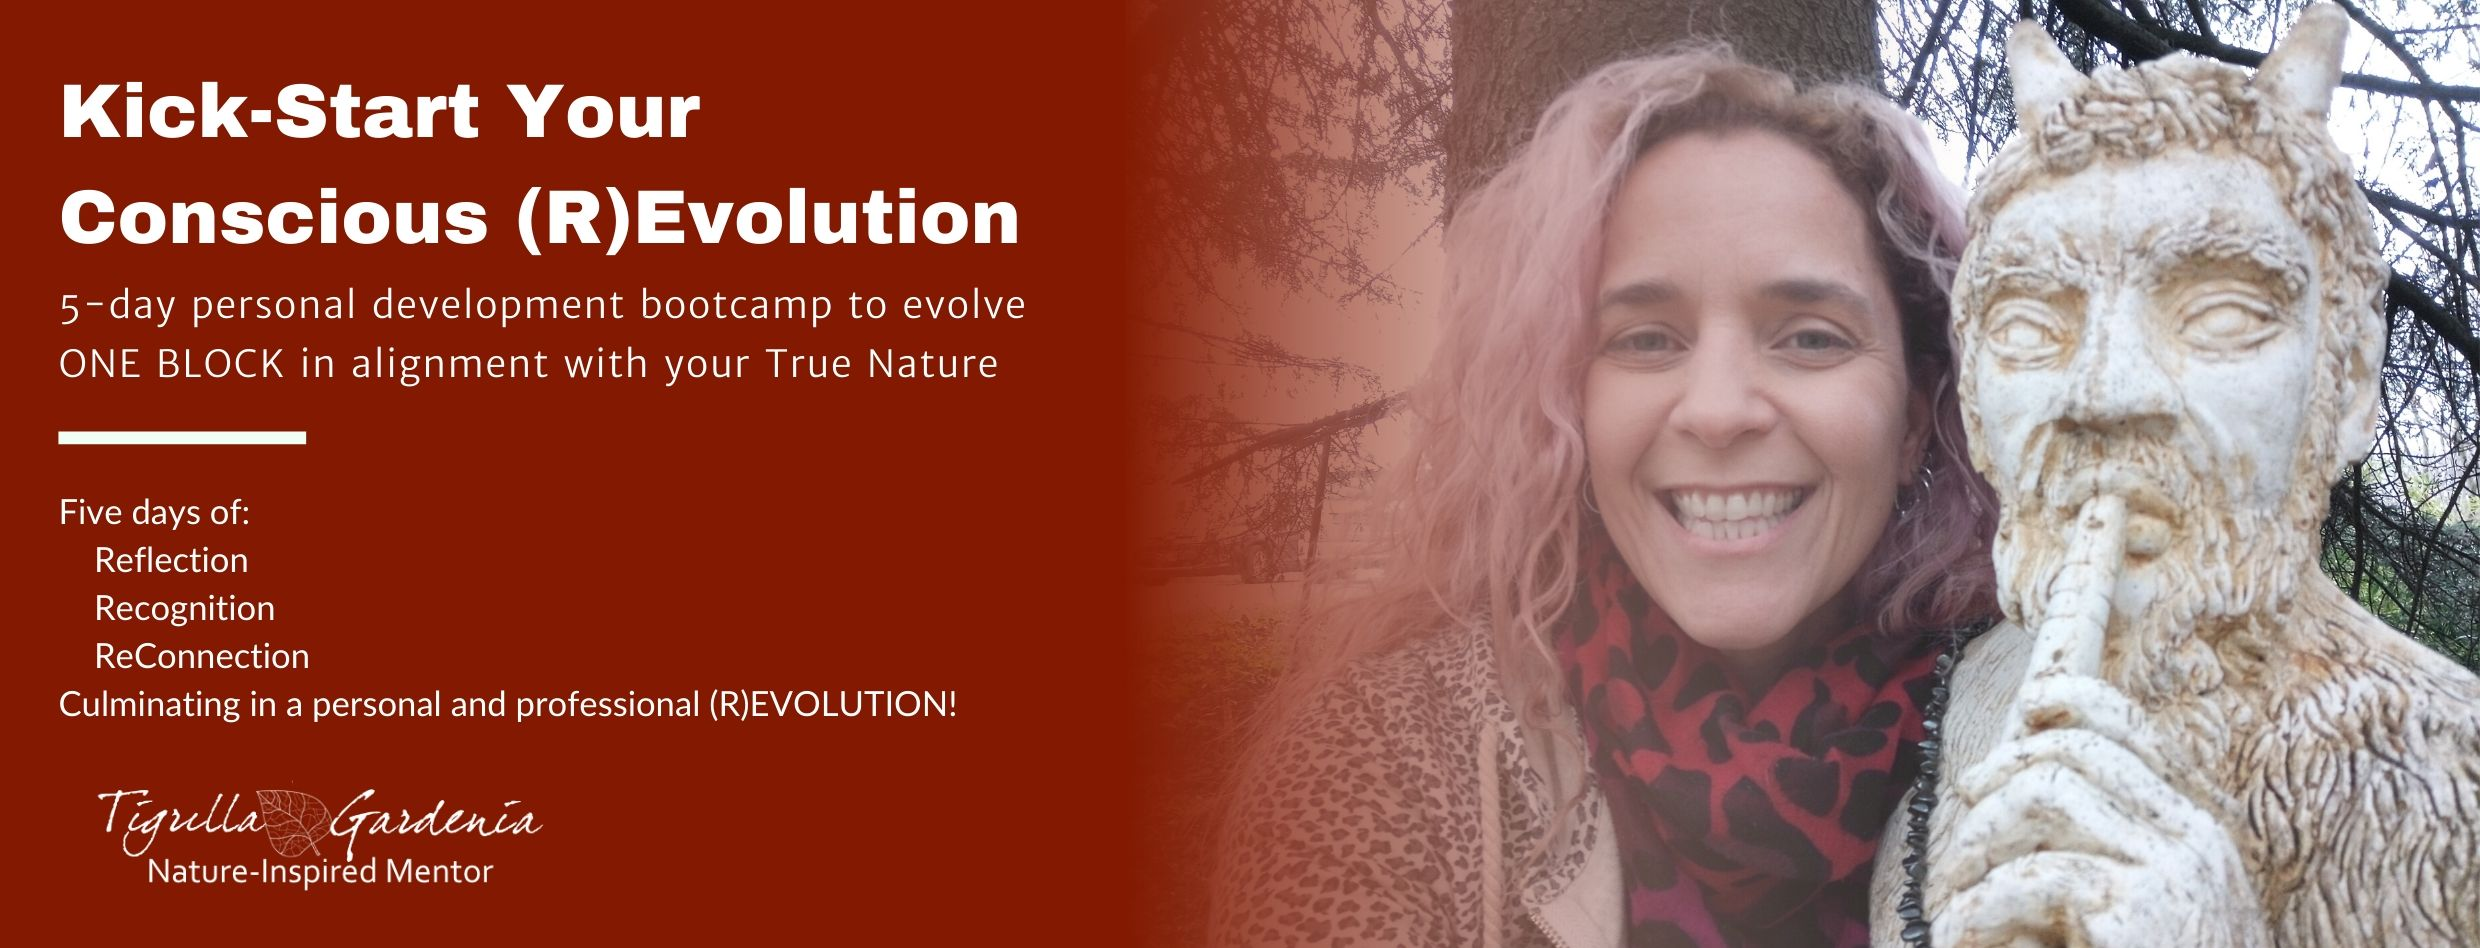 Kick-Start Your Conscious (R)Evolution | Personal Development